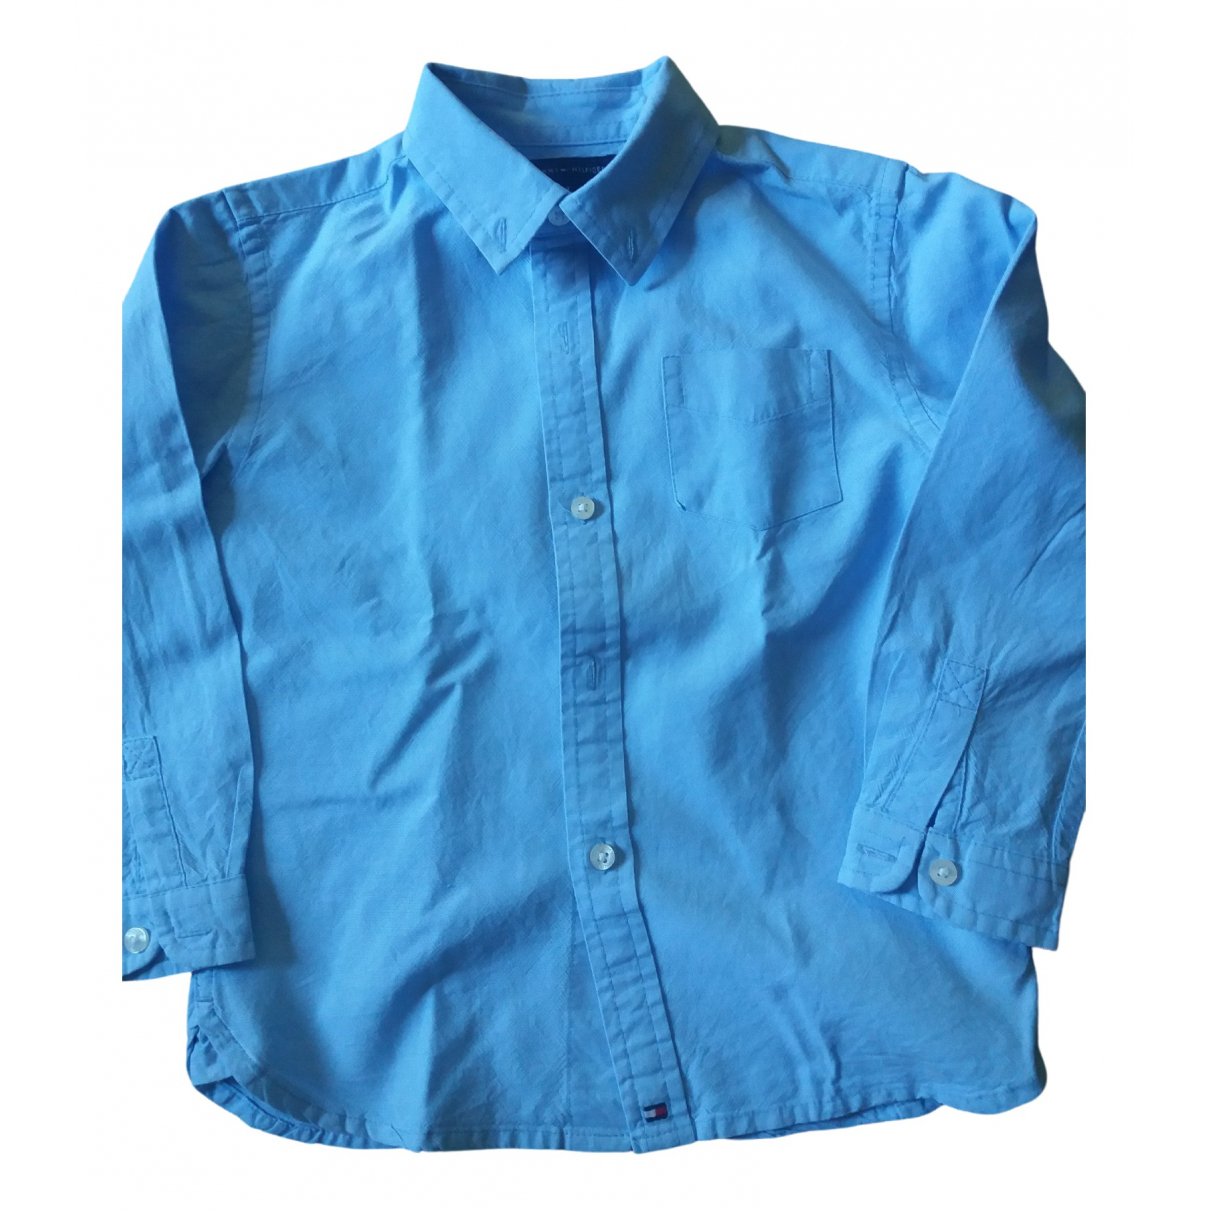 Tommy Hilfiger \N Blue Cotton  top for Kids 3 years - up to 98cm FR